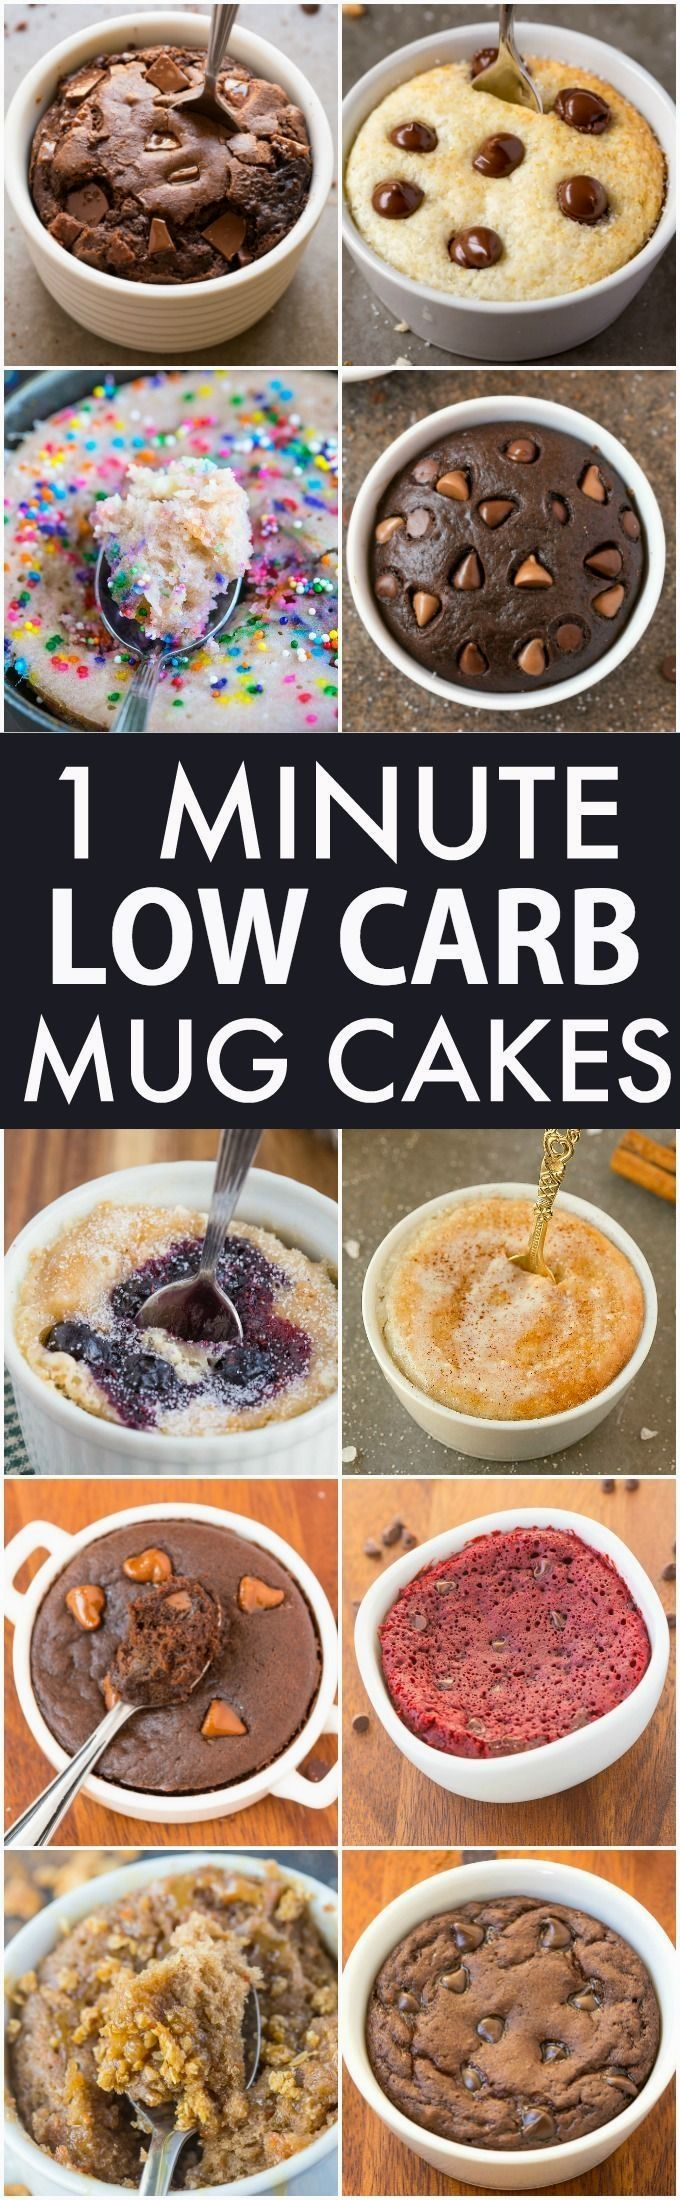 Low Carb Healthy 1 Minute Mug Cakes, Brownies and Muffins (V, GF, Paleo)- Delicious, single-serve desserts and snacks which take less than a minute! Low carb, sugar free and more with OVEN options too! vegan, gluten free, paleo recipe- thebigmansworld.com http://eatdojo.com/healthy-snacks-weightloss-easy-delicious/